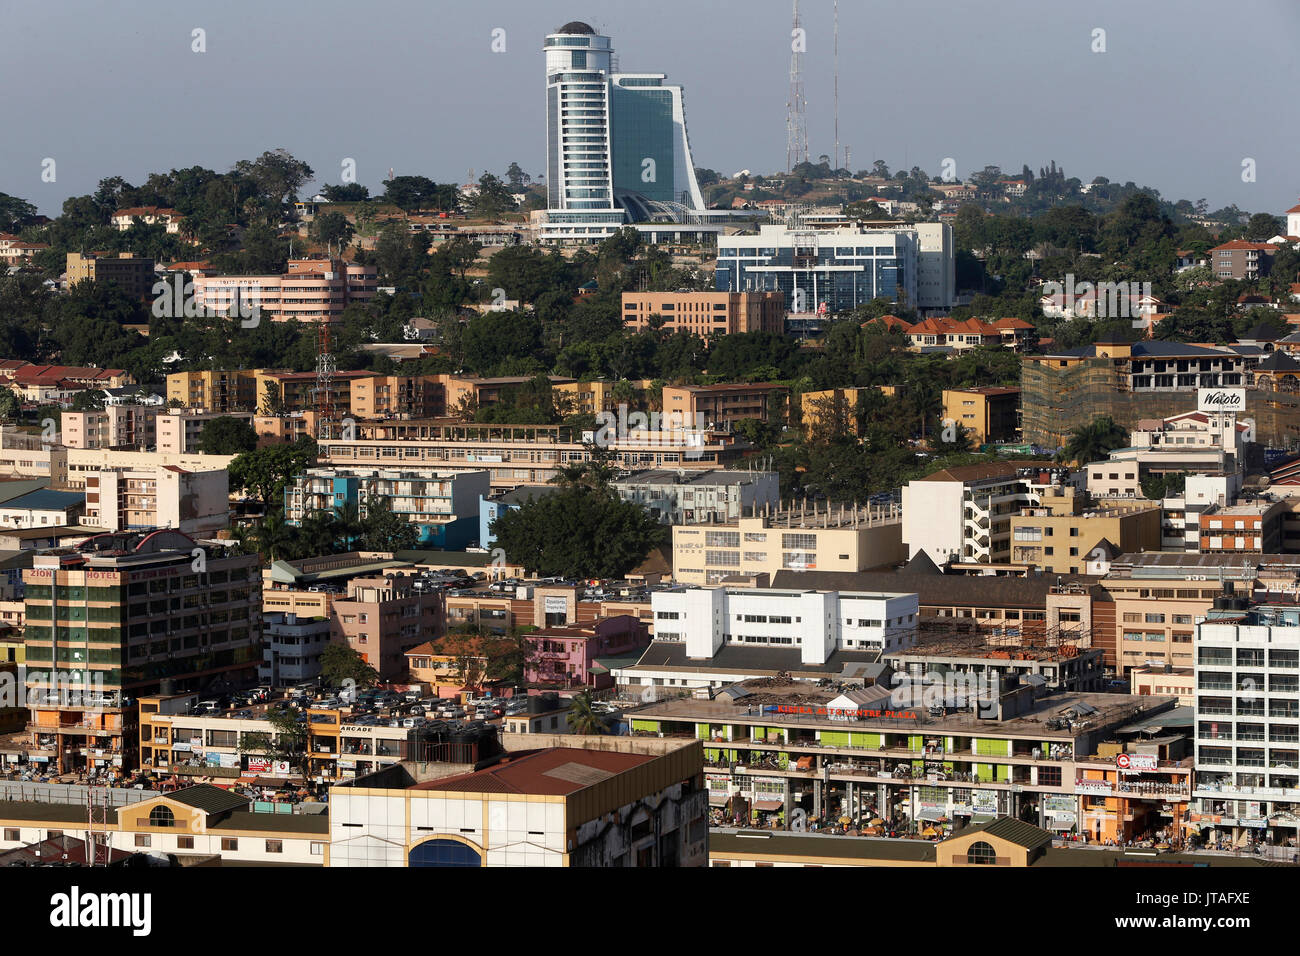 La ville de Kampala, Ouganda, Afrique du Sud Photo Stock